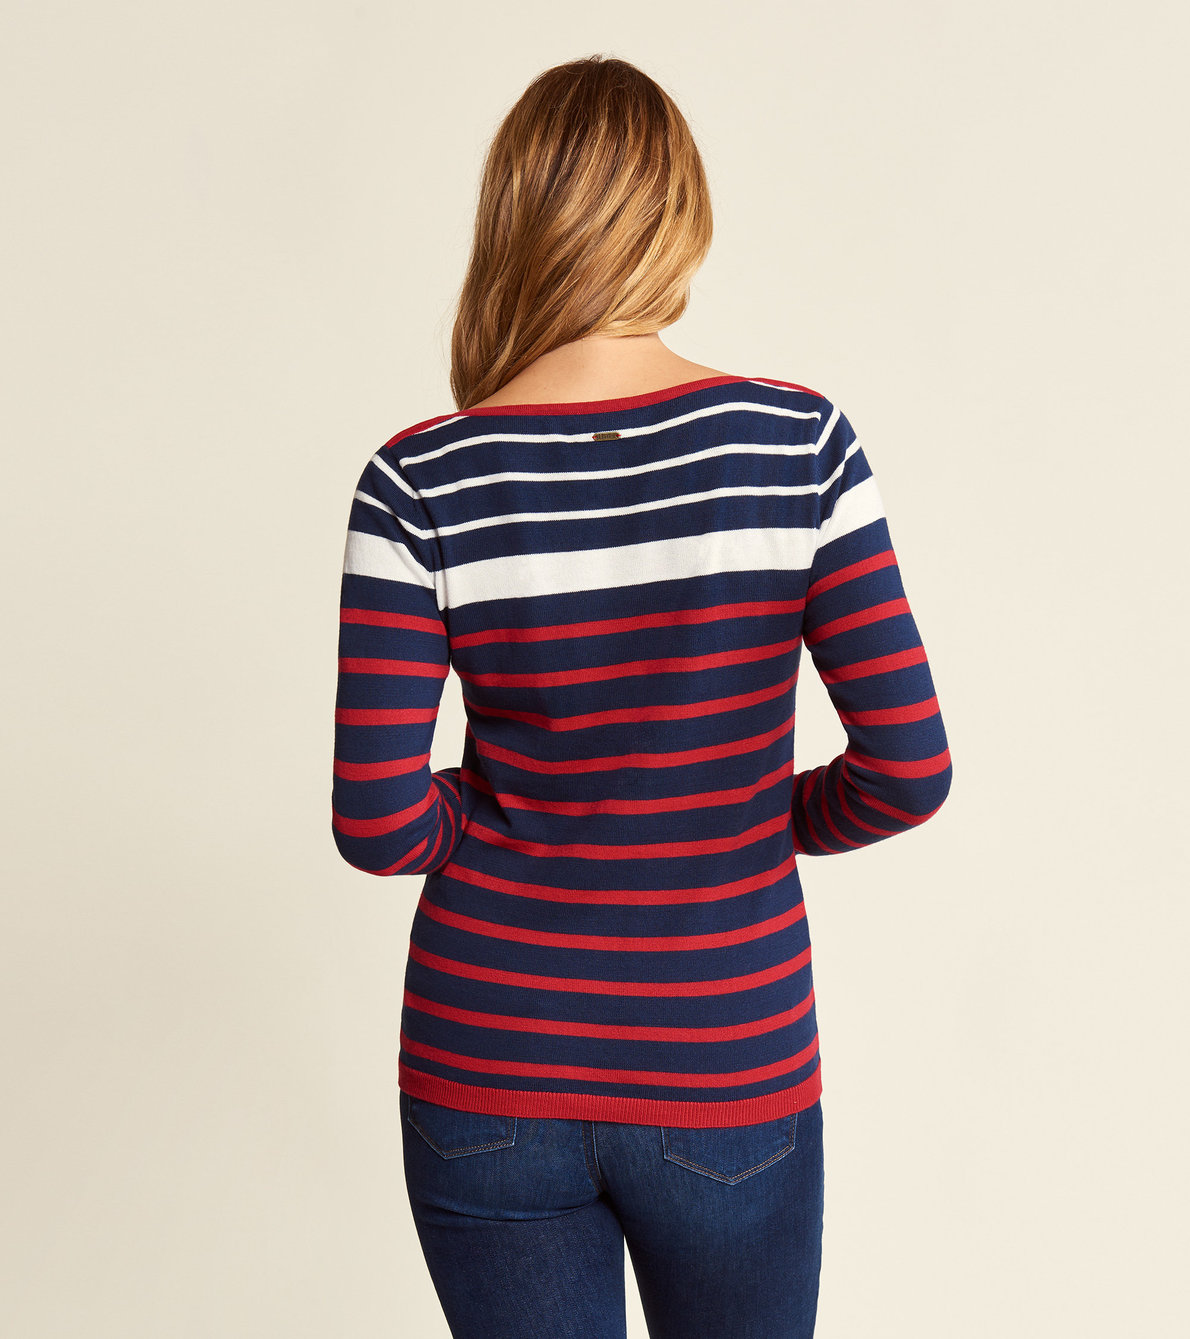 View larger image of Breton Sweater - Navy and Red Stripes